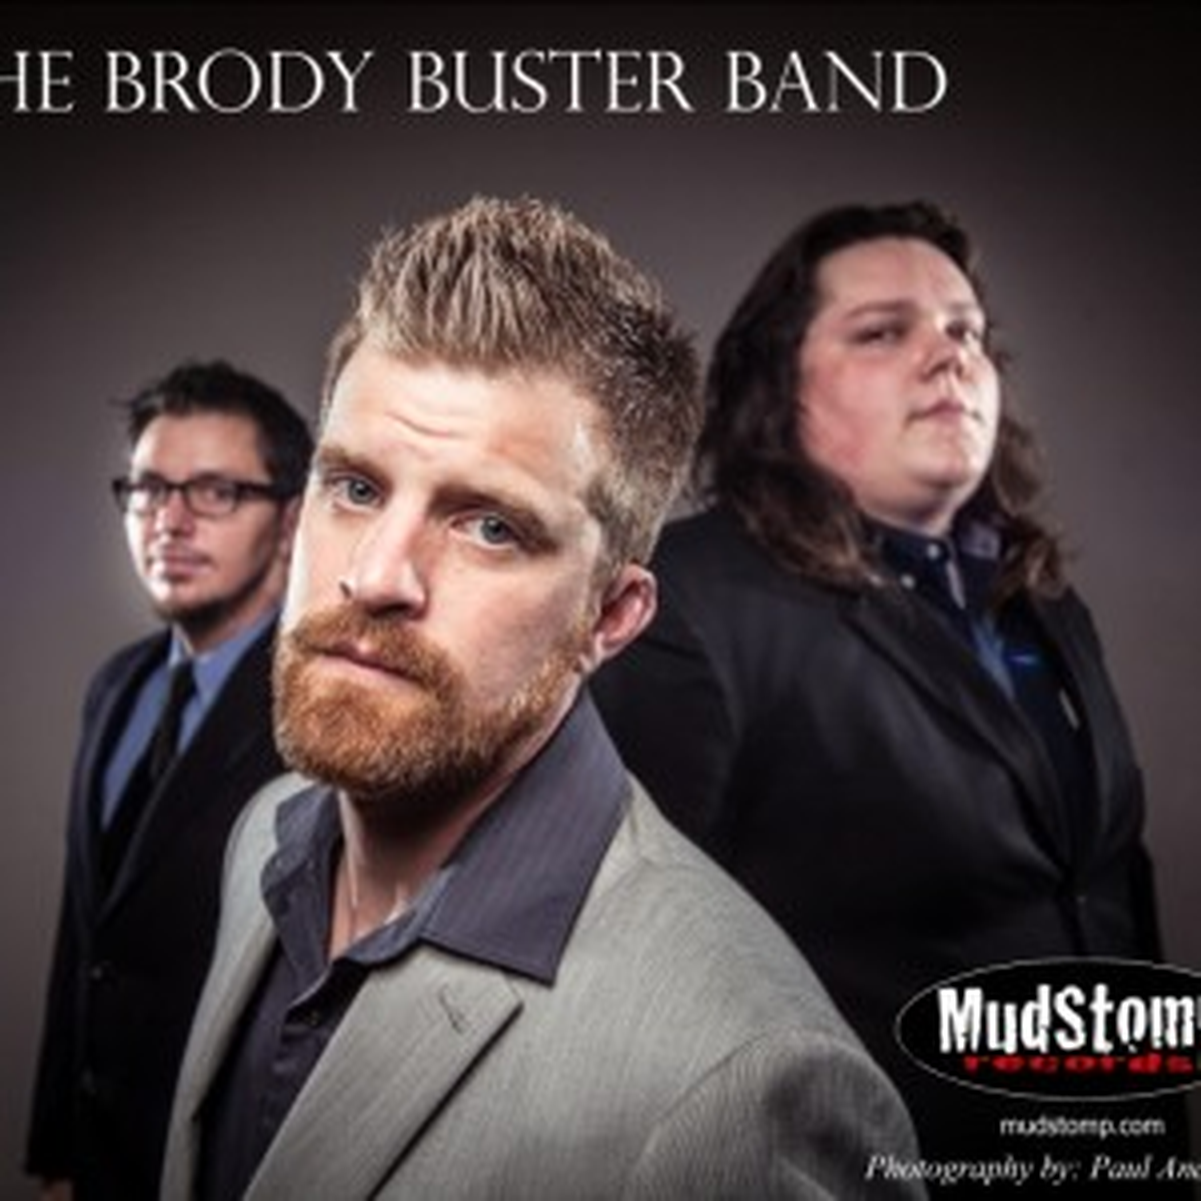 The Brody Buster Band wiki, The Brody Buster Band review, The Brody Buster Band history, The Brody Buster Band news